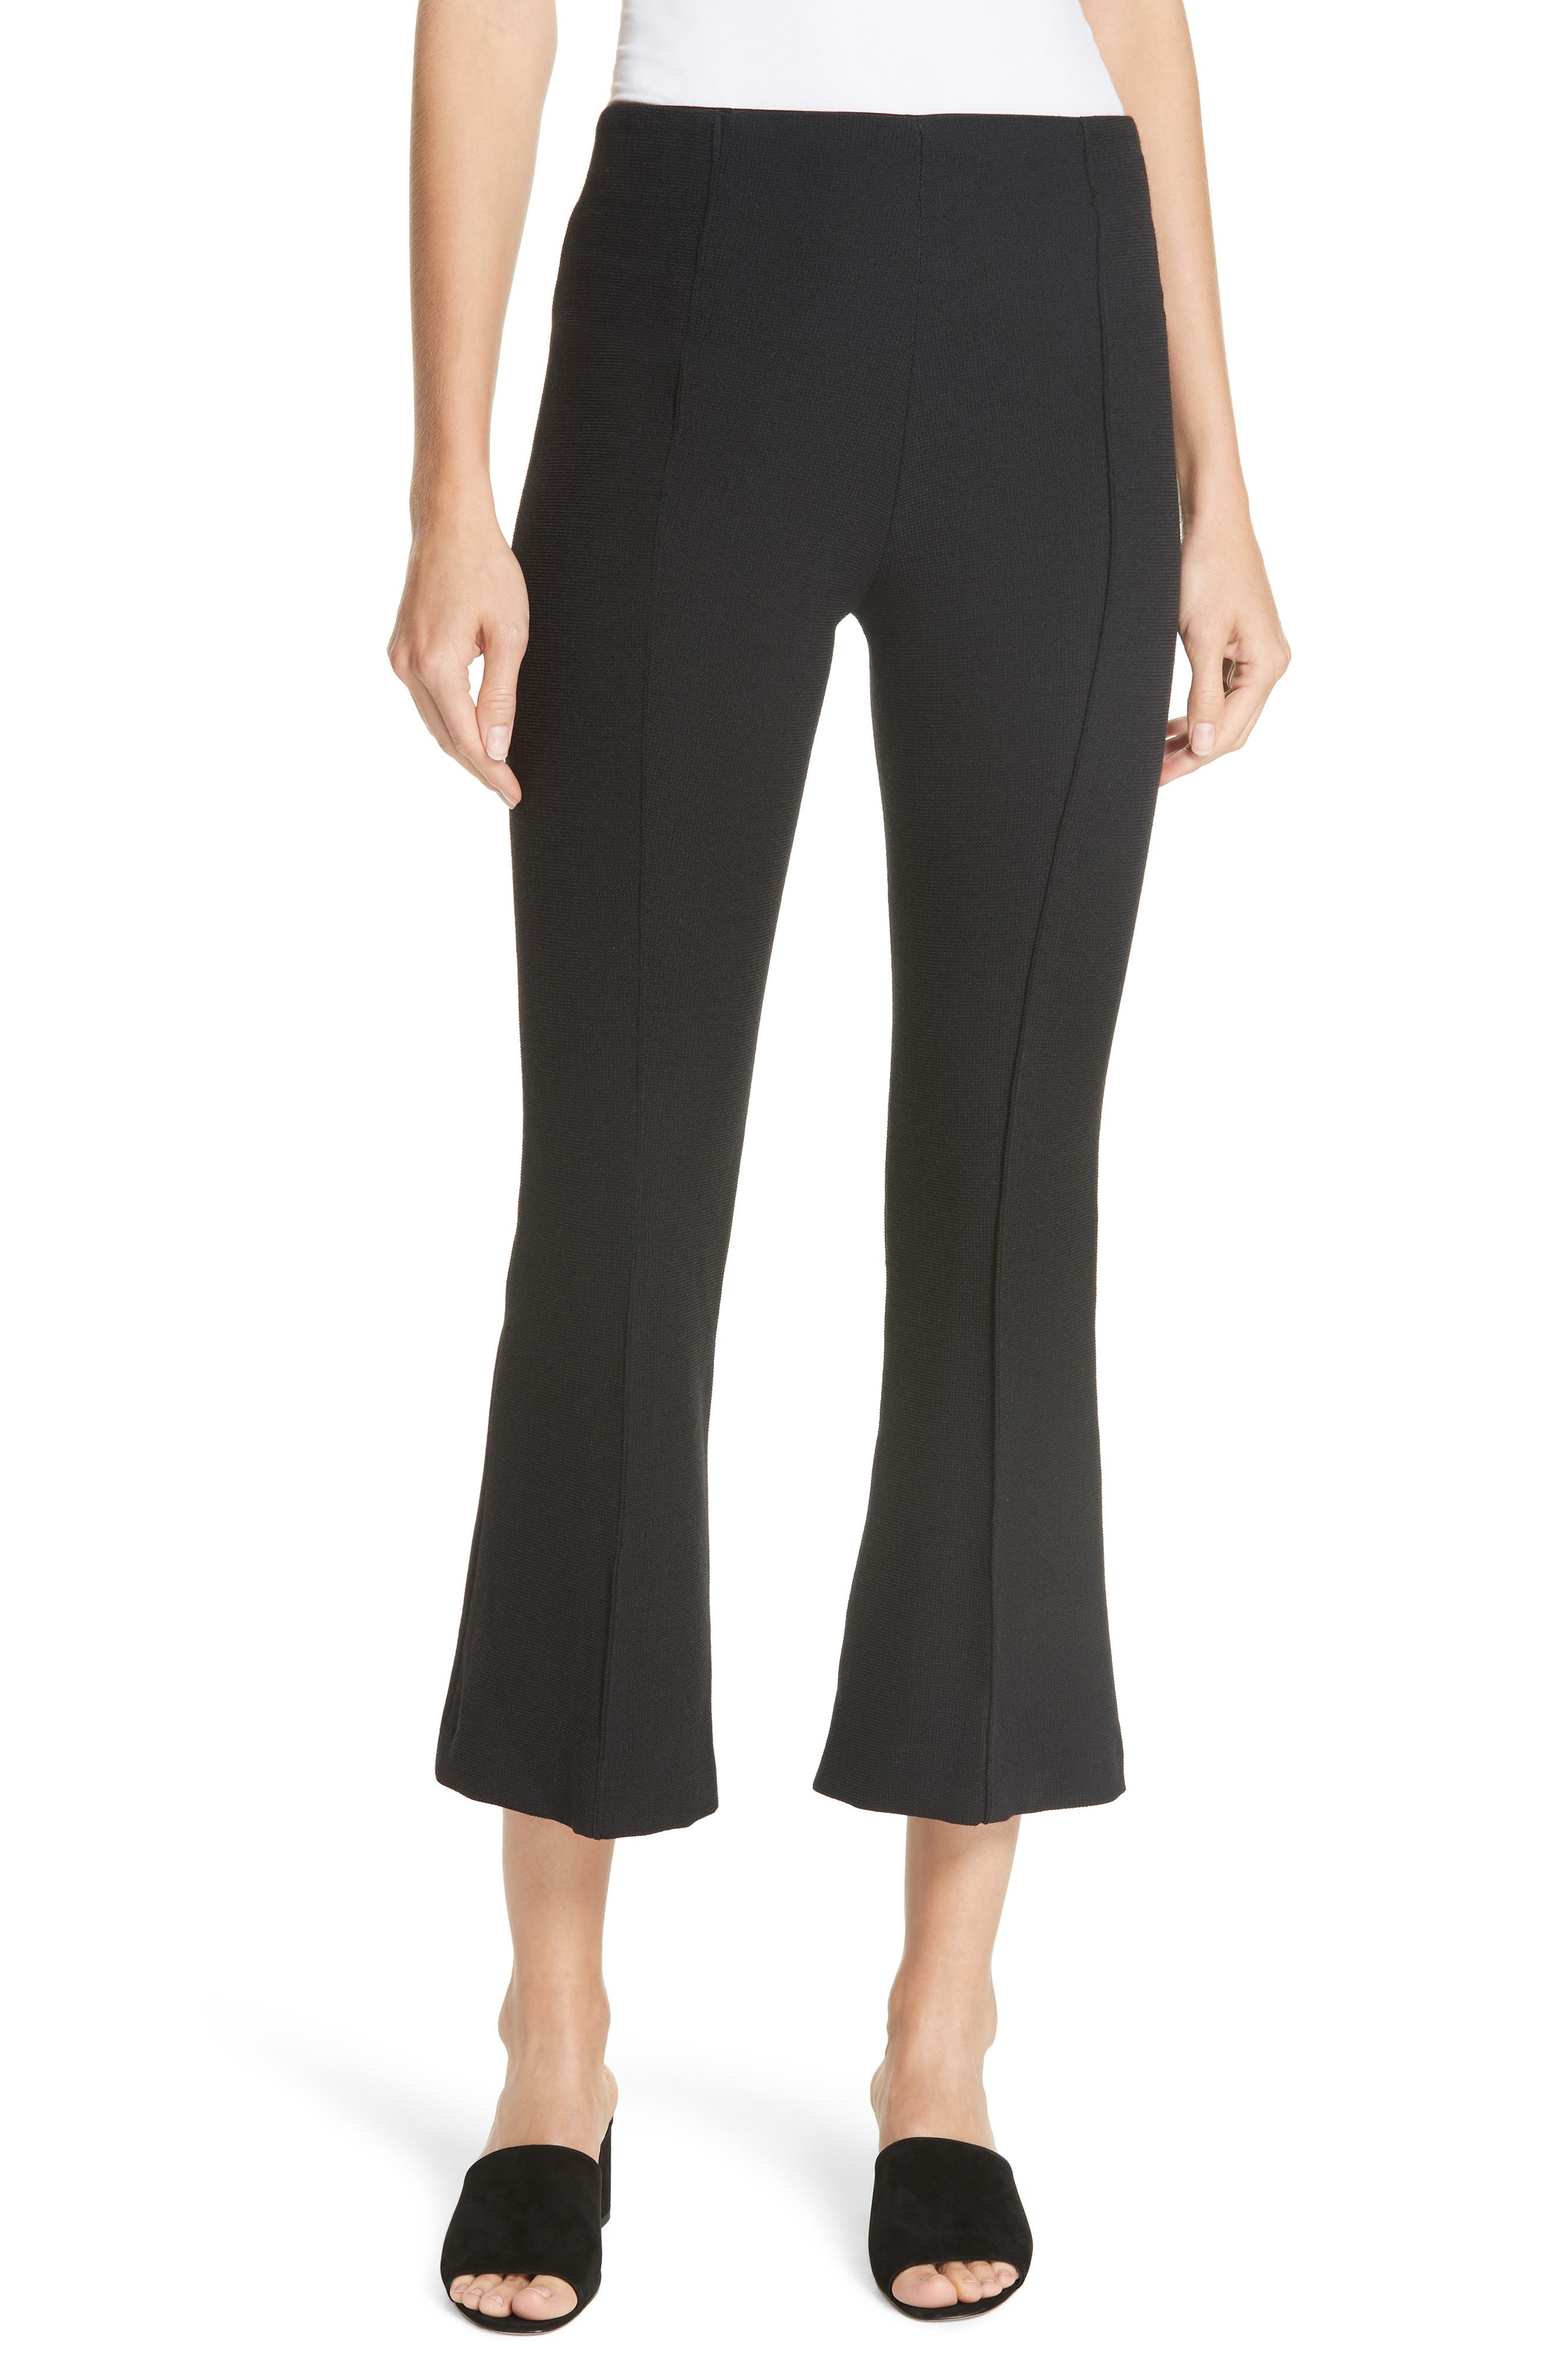 SMYTHE PULL-ON WOOL BLEND CROP FLARE PANTS